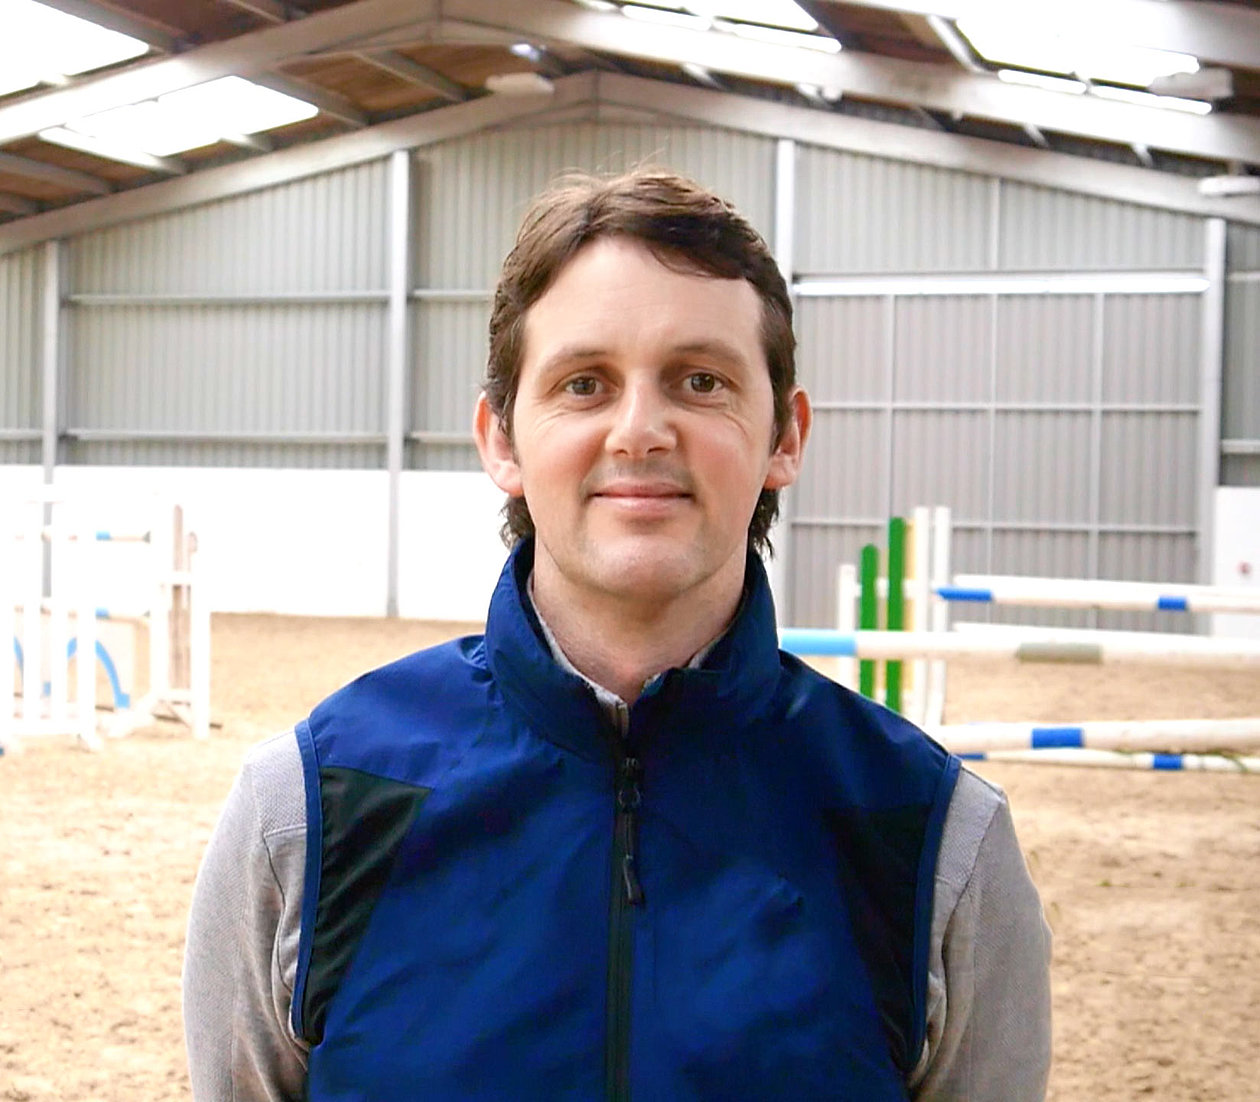 Interview with Billy Twomey - British Showjumper